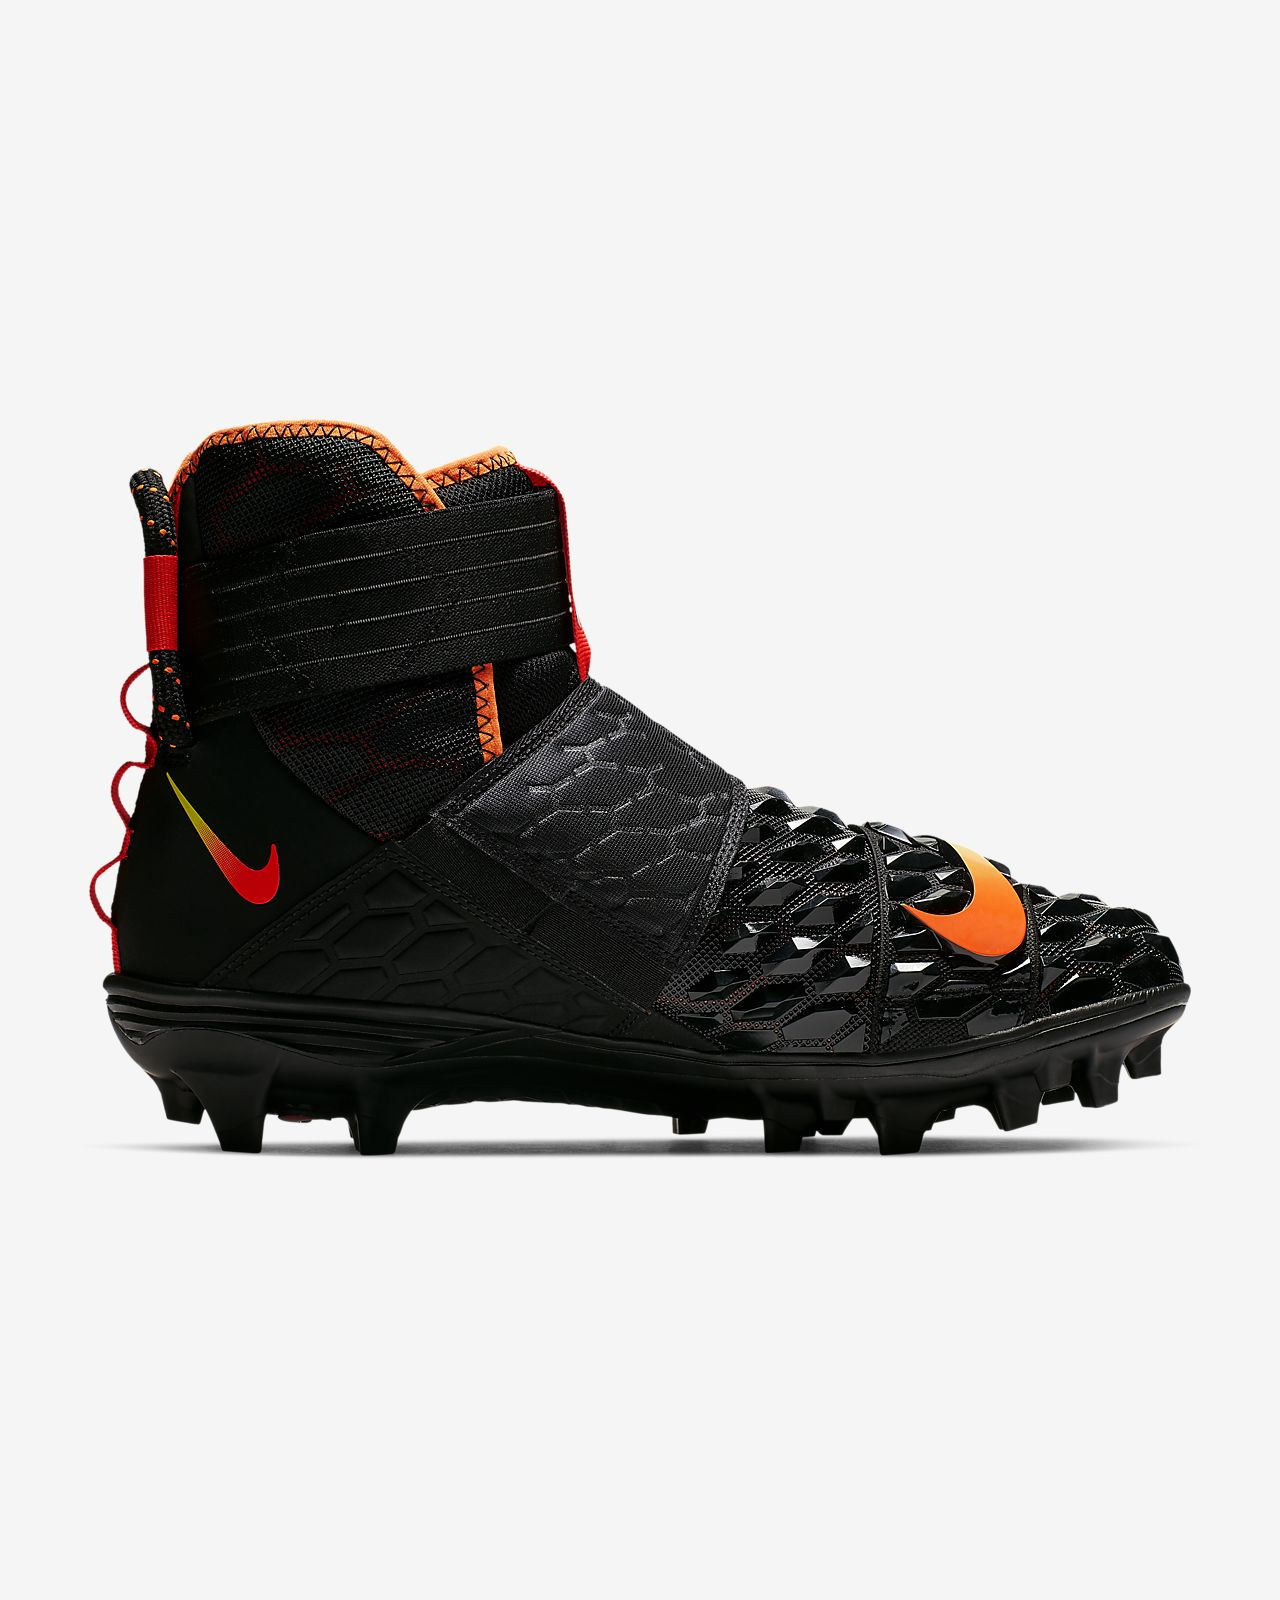 best authentic 4101b 4731f Nike Force Savage Elite 2 Men's Football Cleat. Nike.com